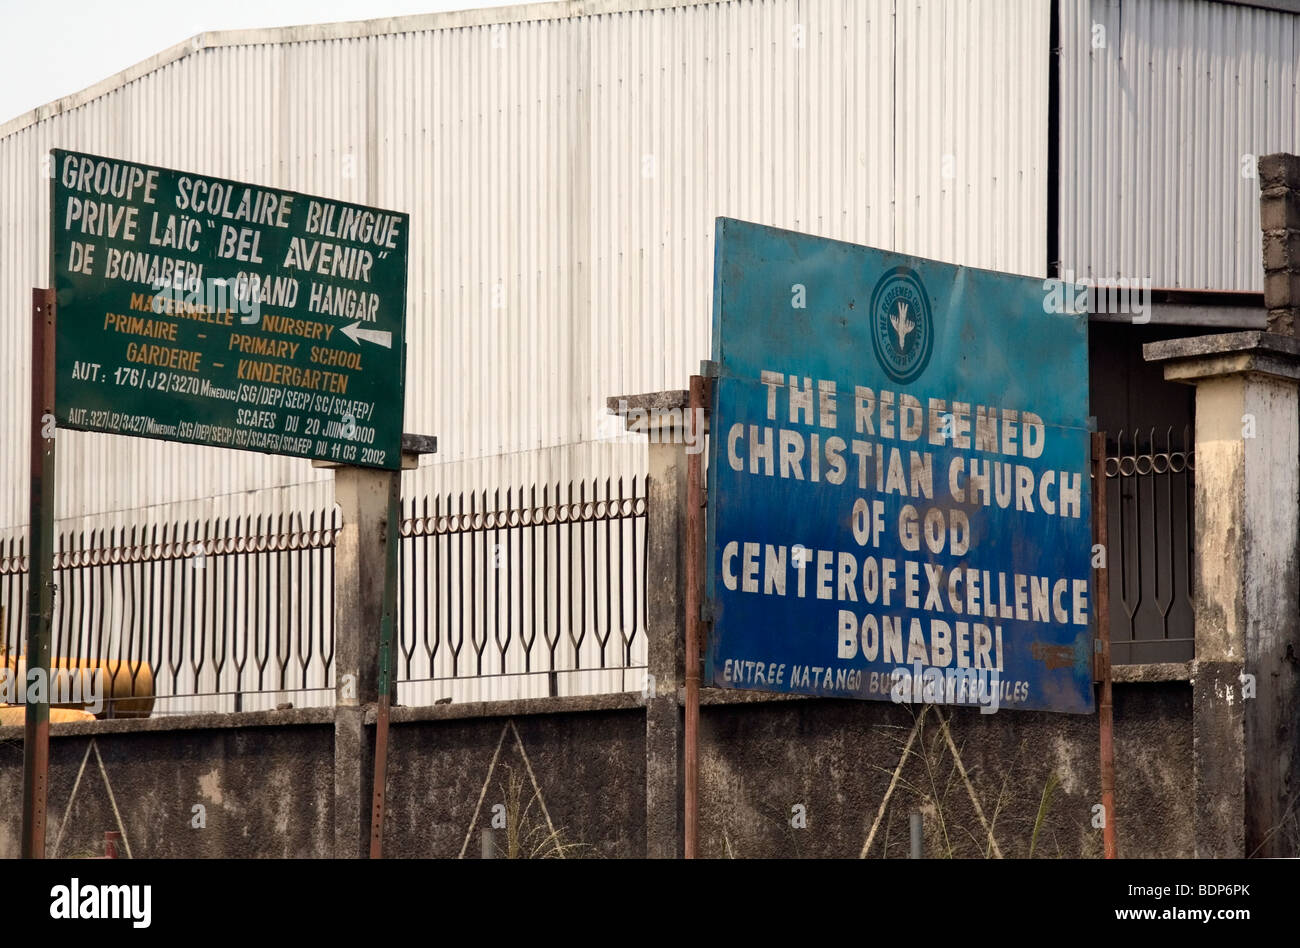 Signs for private school and Redeemed Christian Church of